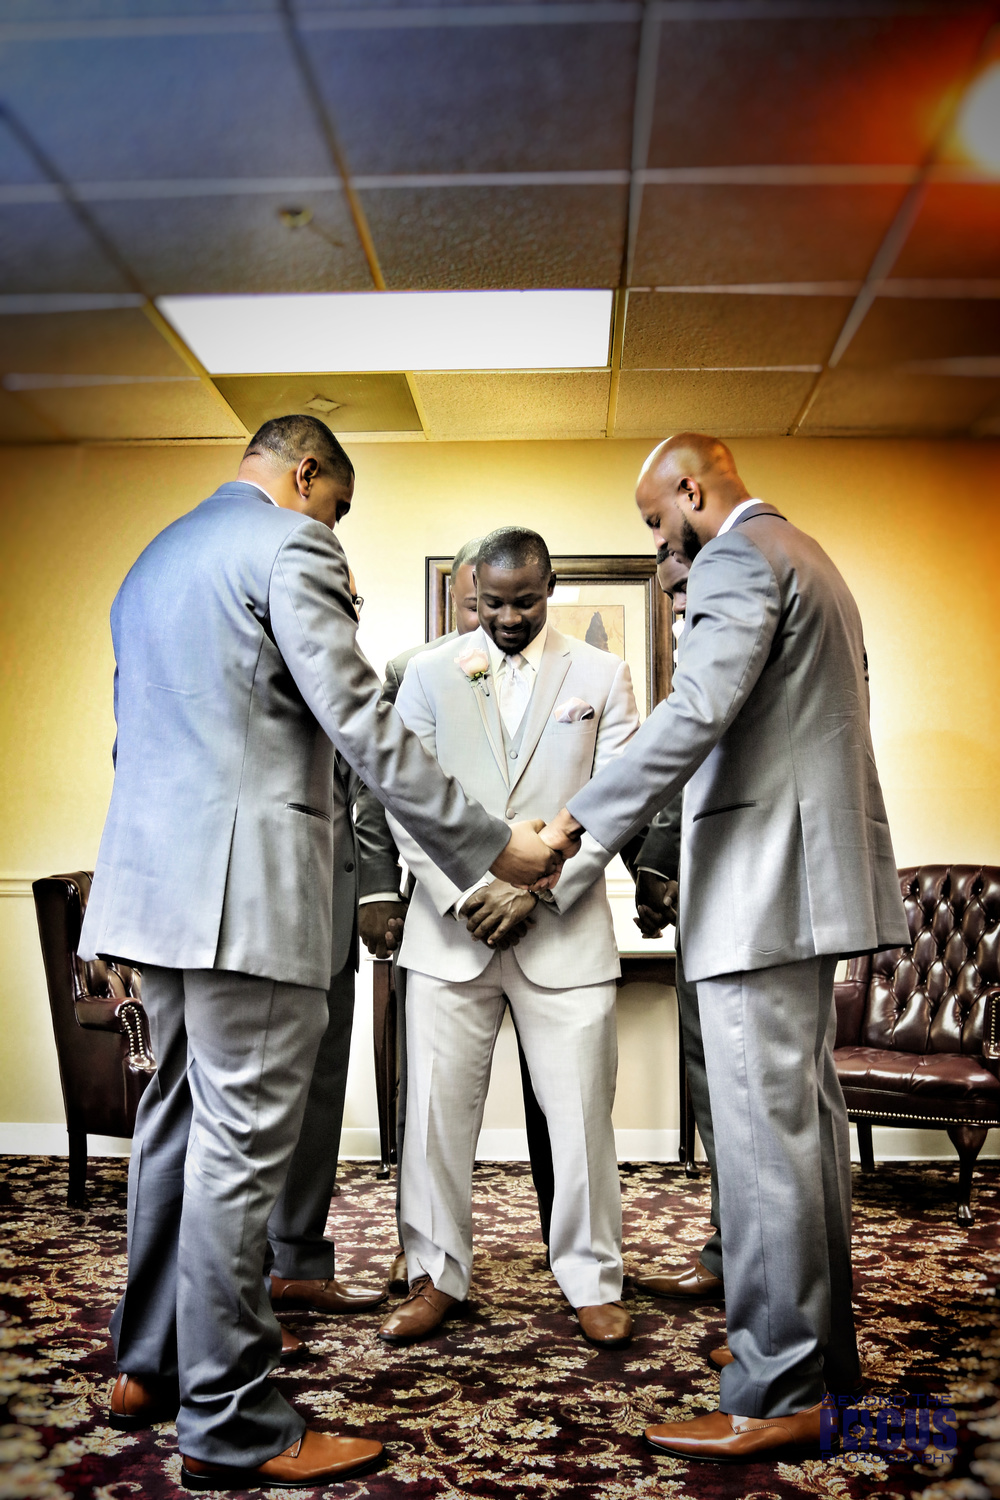 Palmer Wedding - Pre-Wedding Photos Guys6.jpg